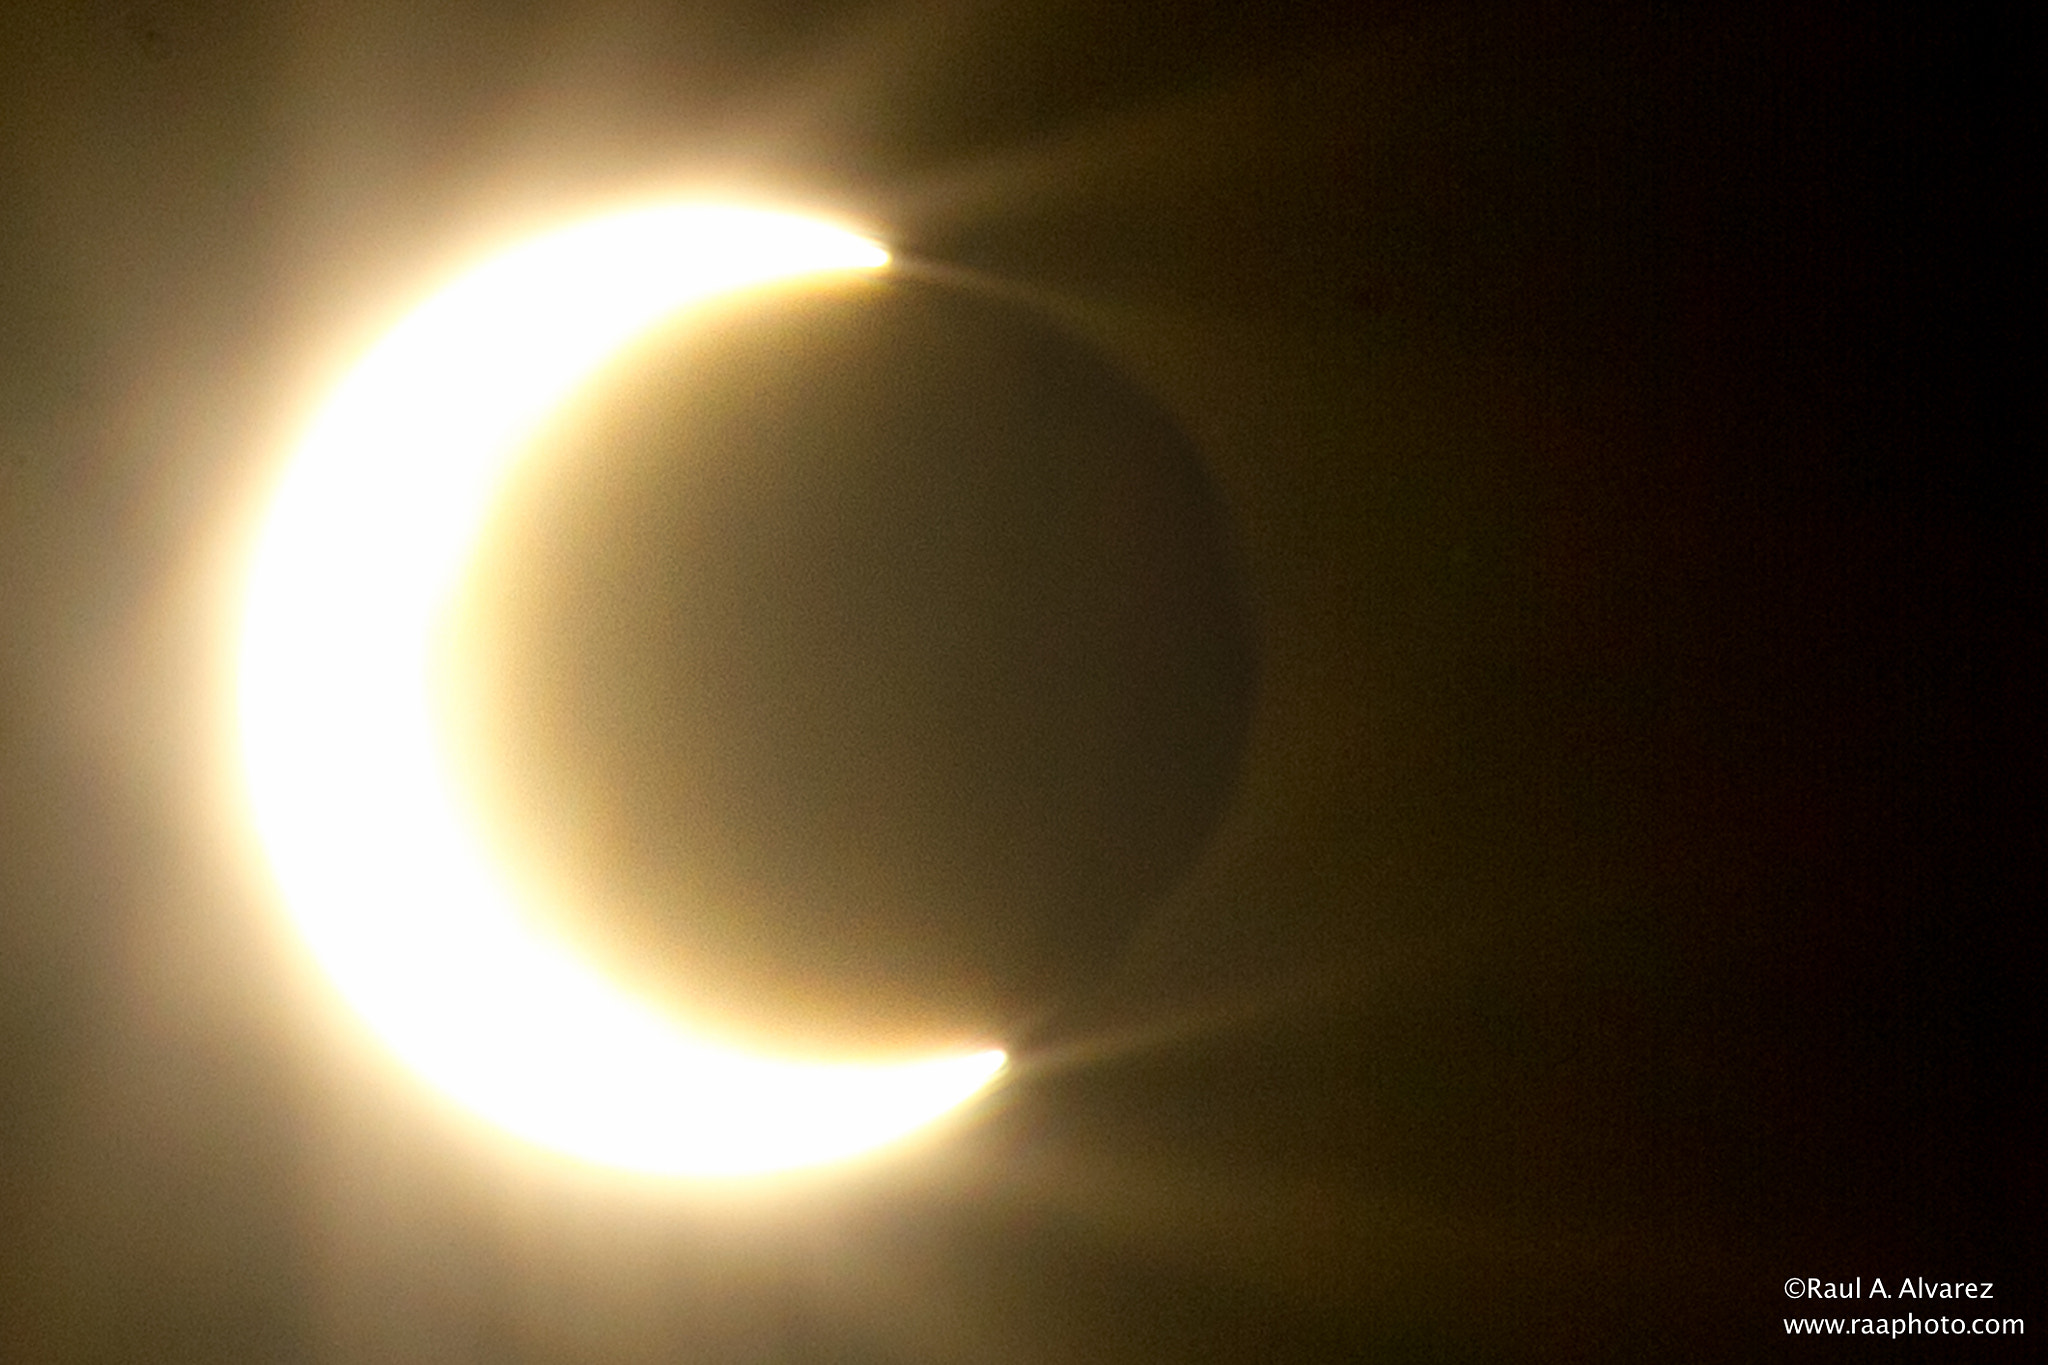 Photograph Solar Eclipse May 20, 2012 by Raul Alvarez on 500px